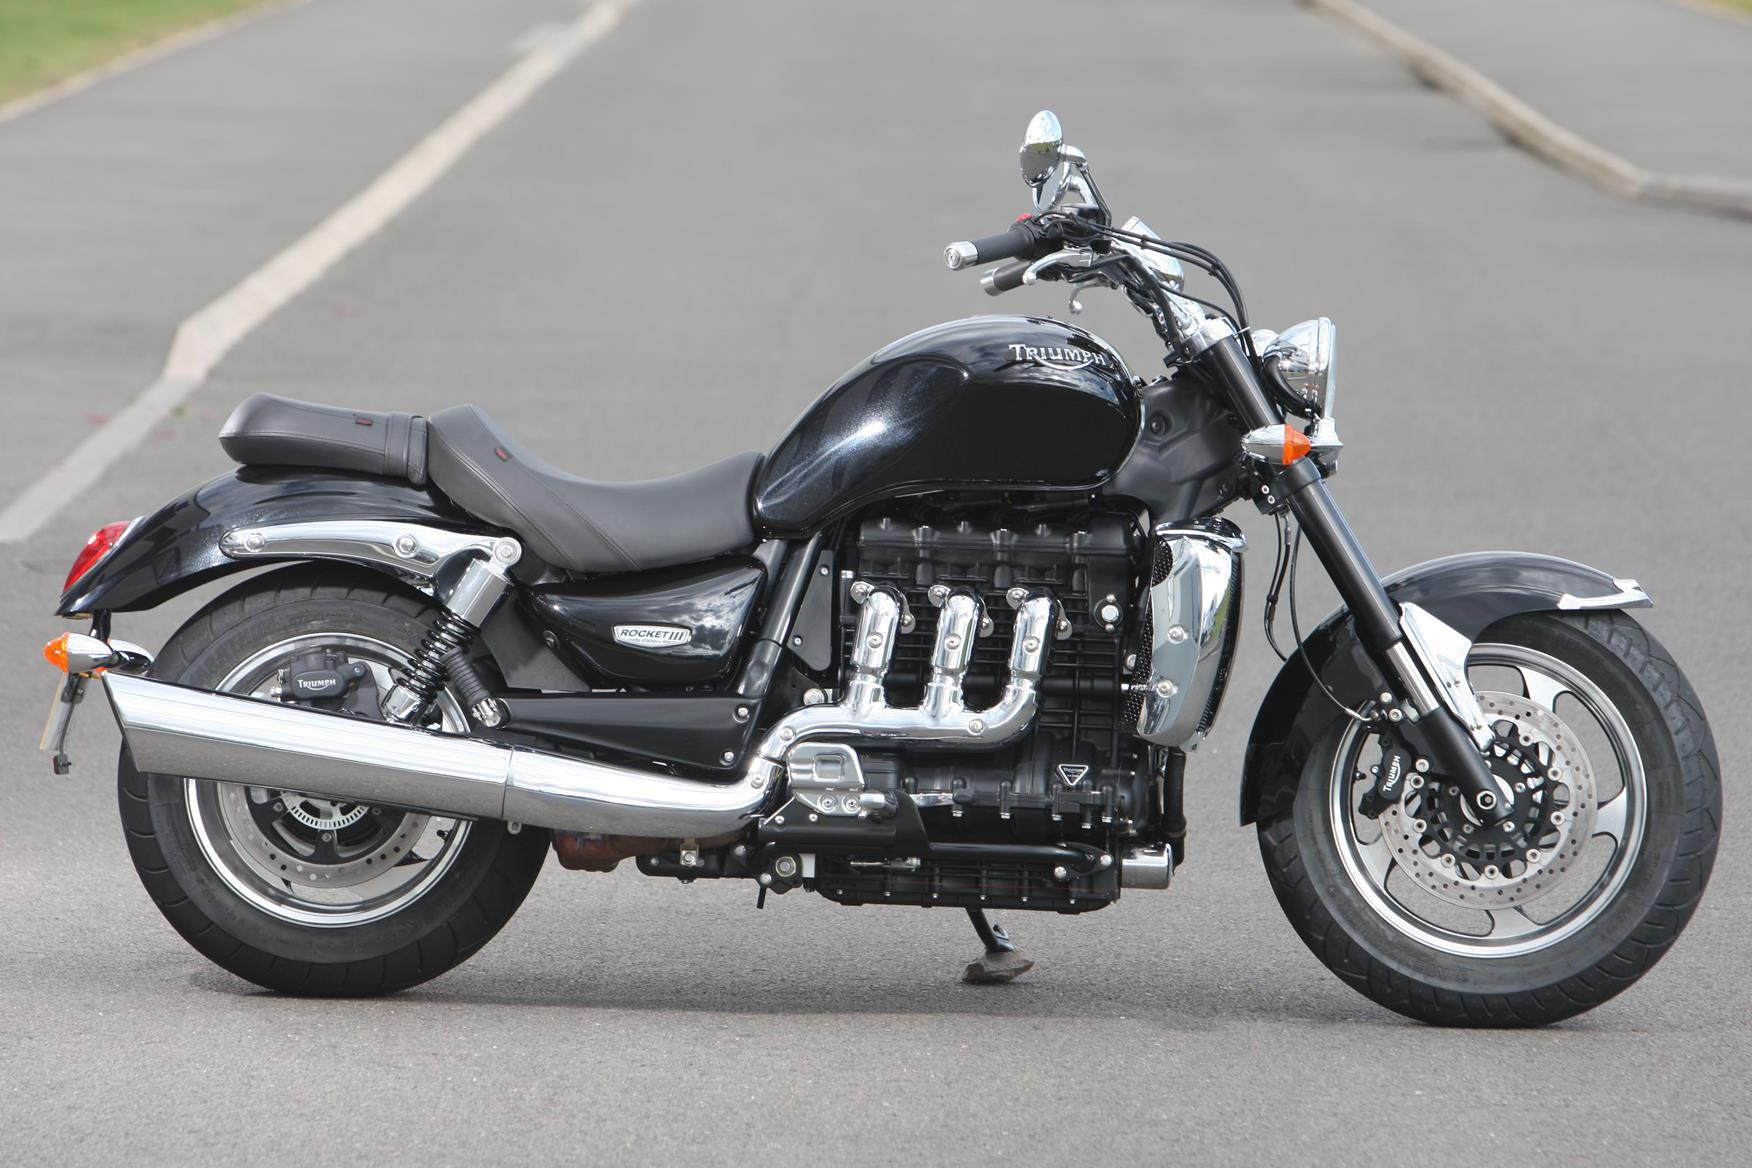 triumph rocket iii motorcycle - photo #6